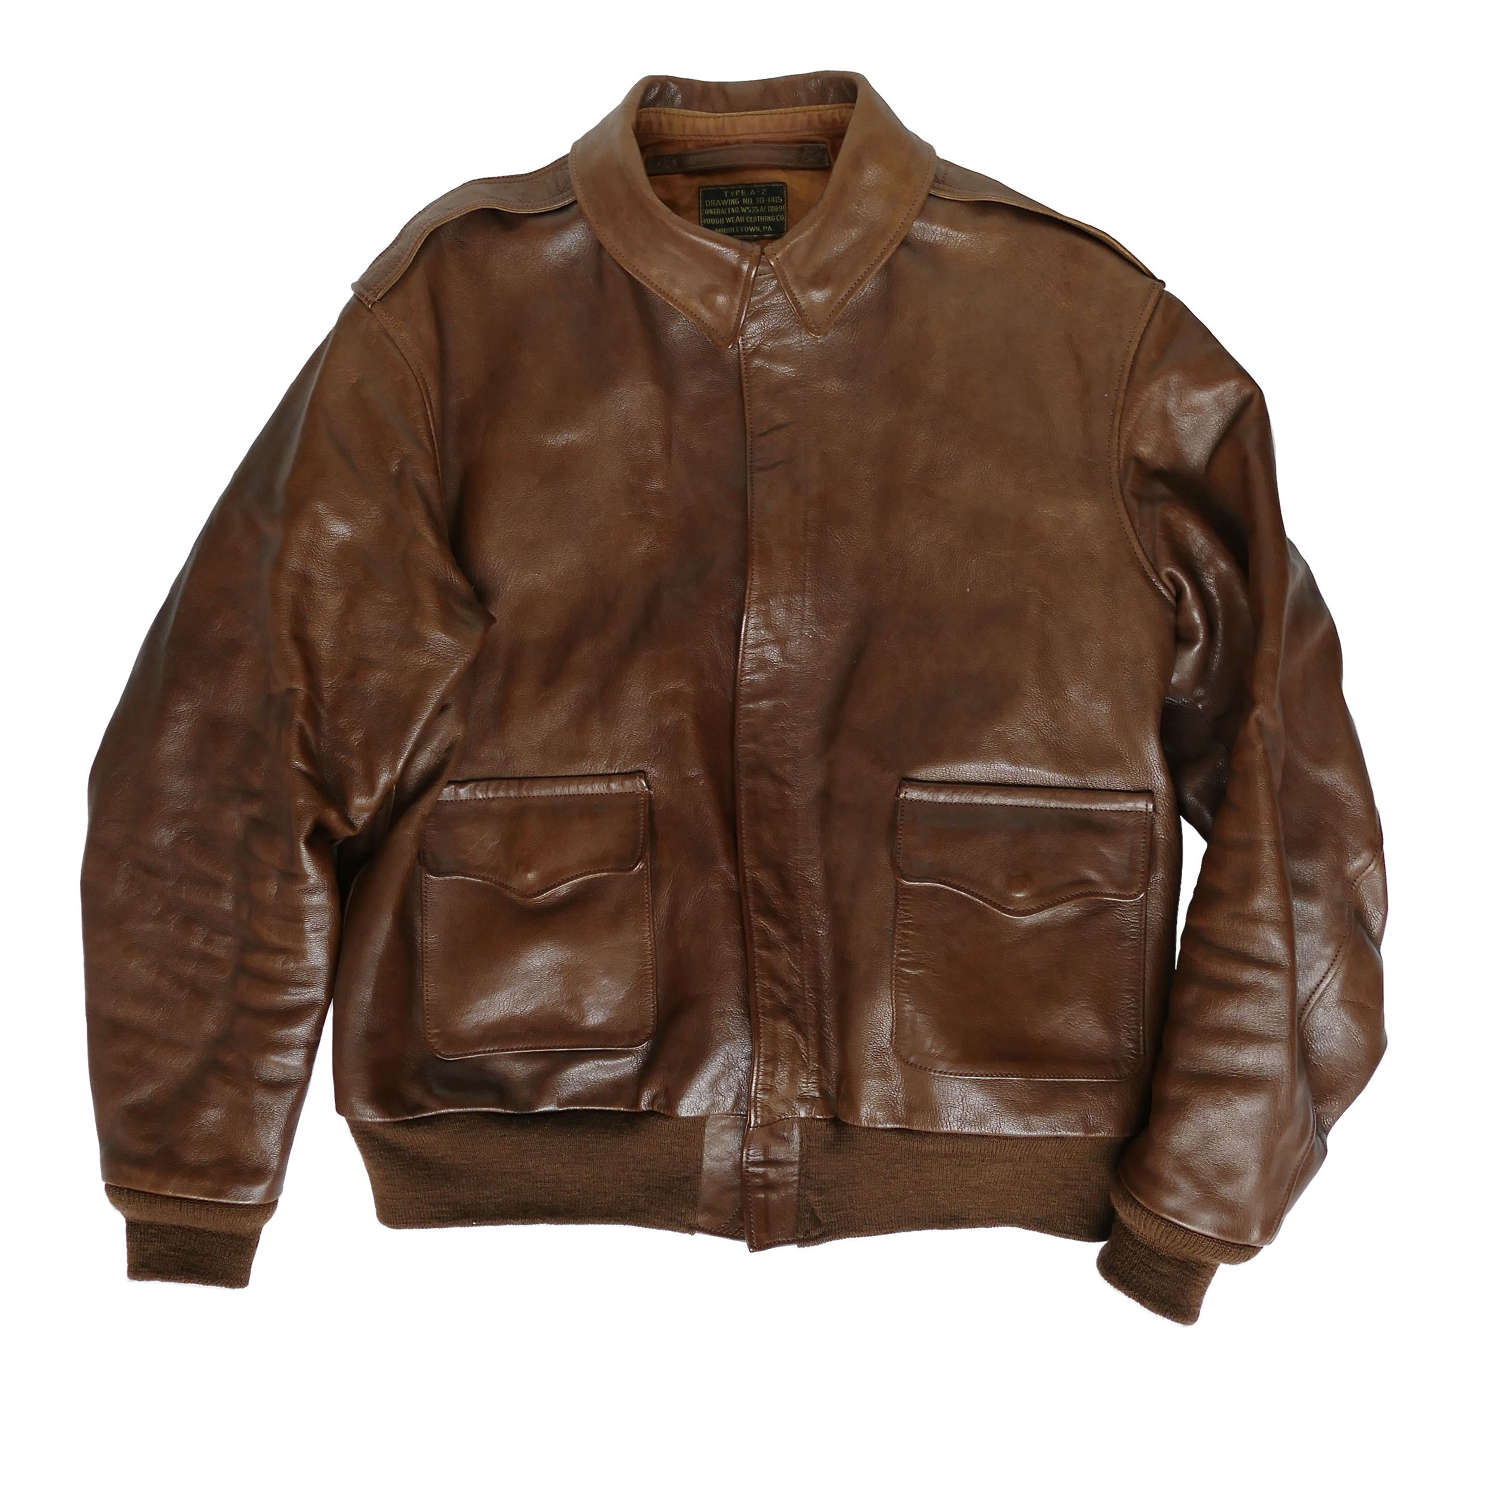 USAAF A-2 flying jacket - Good Wear Leather reproduction